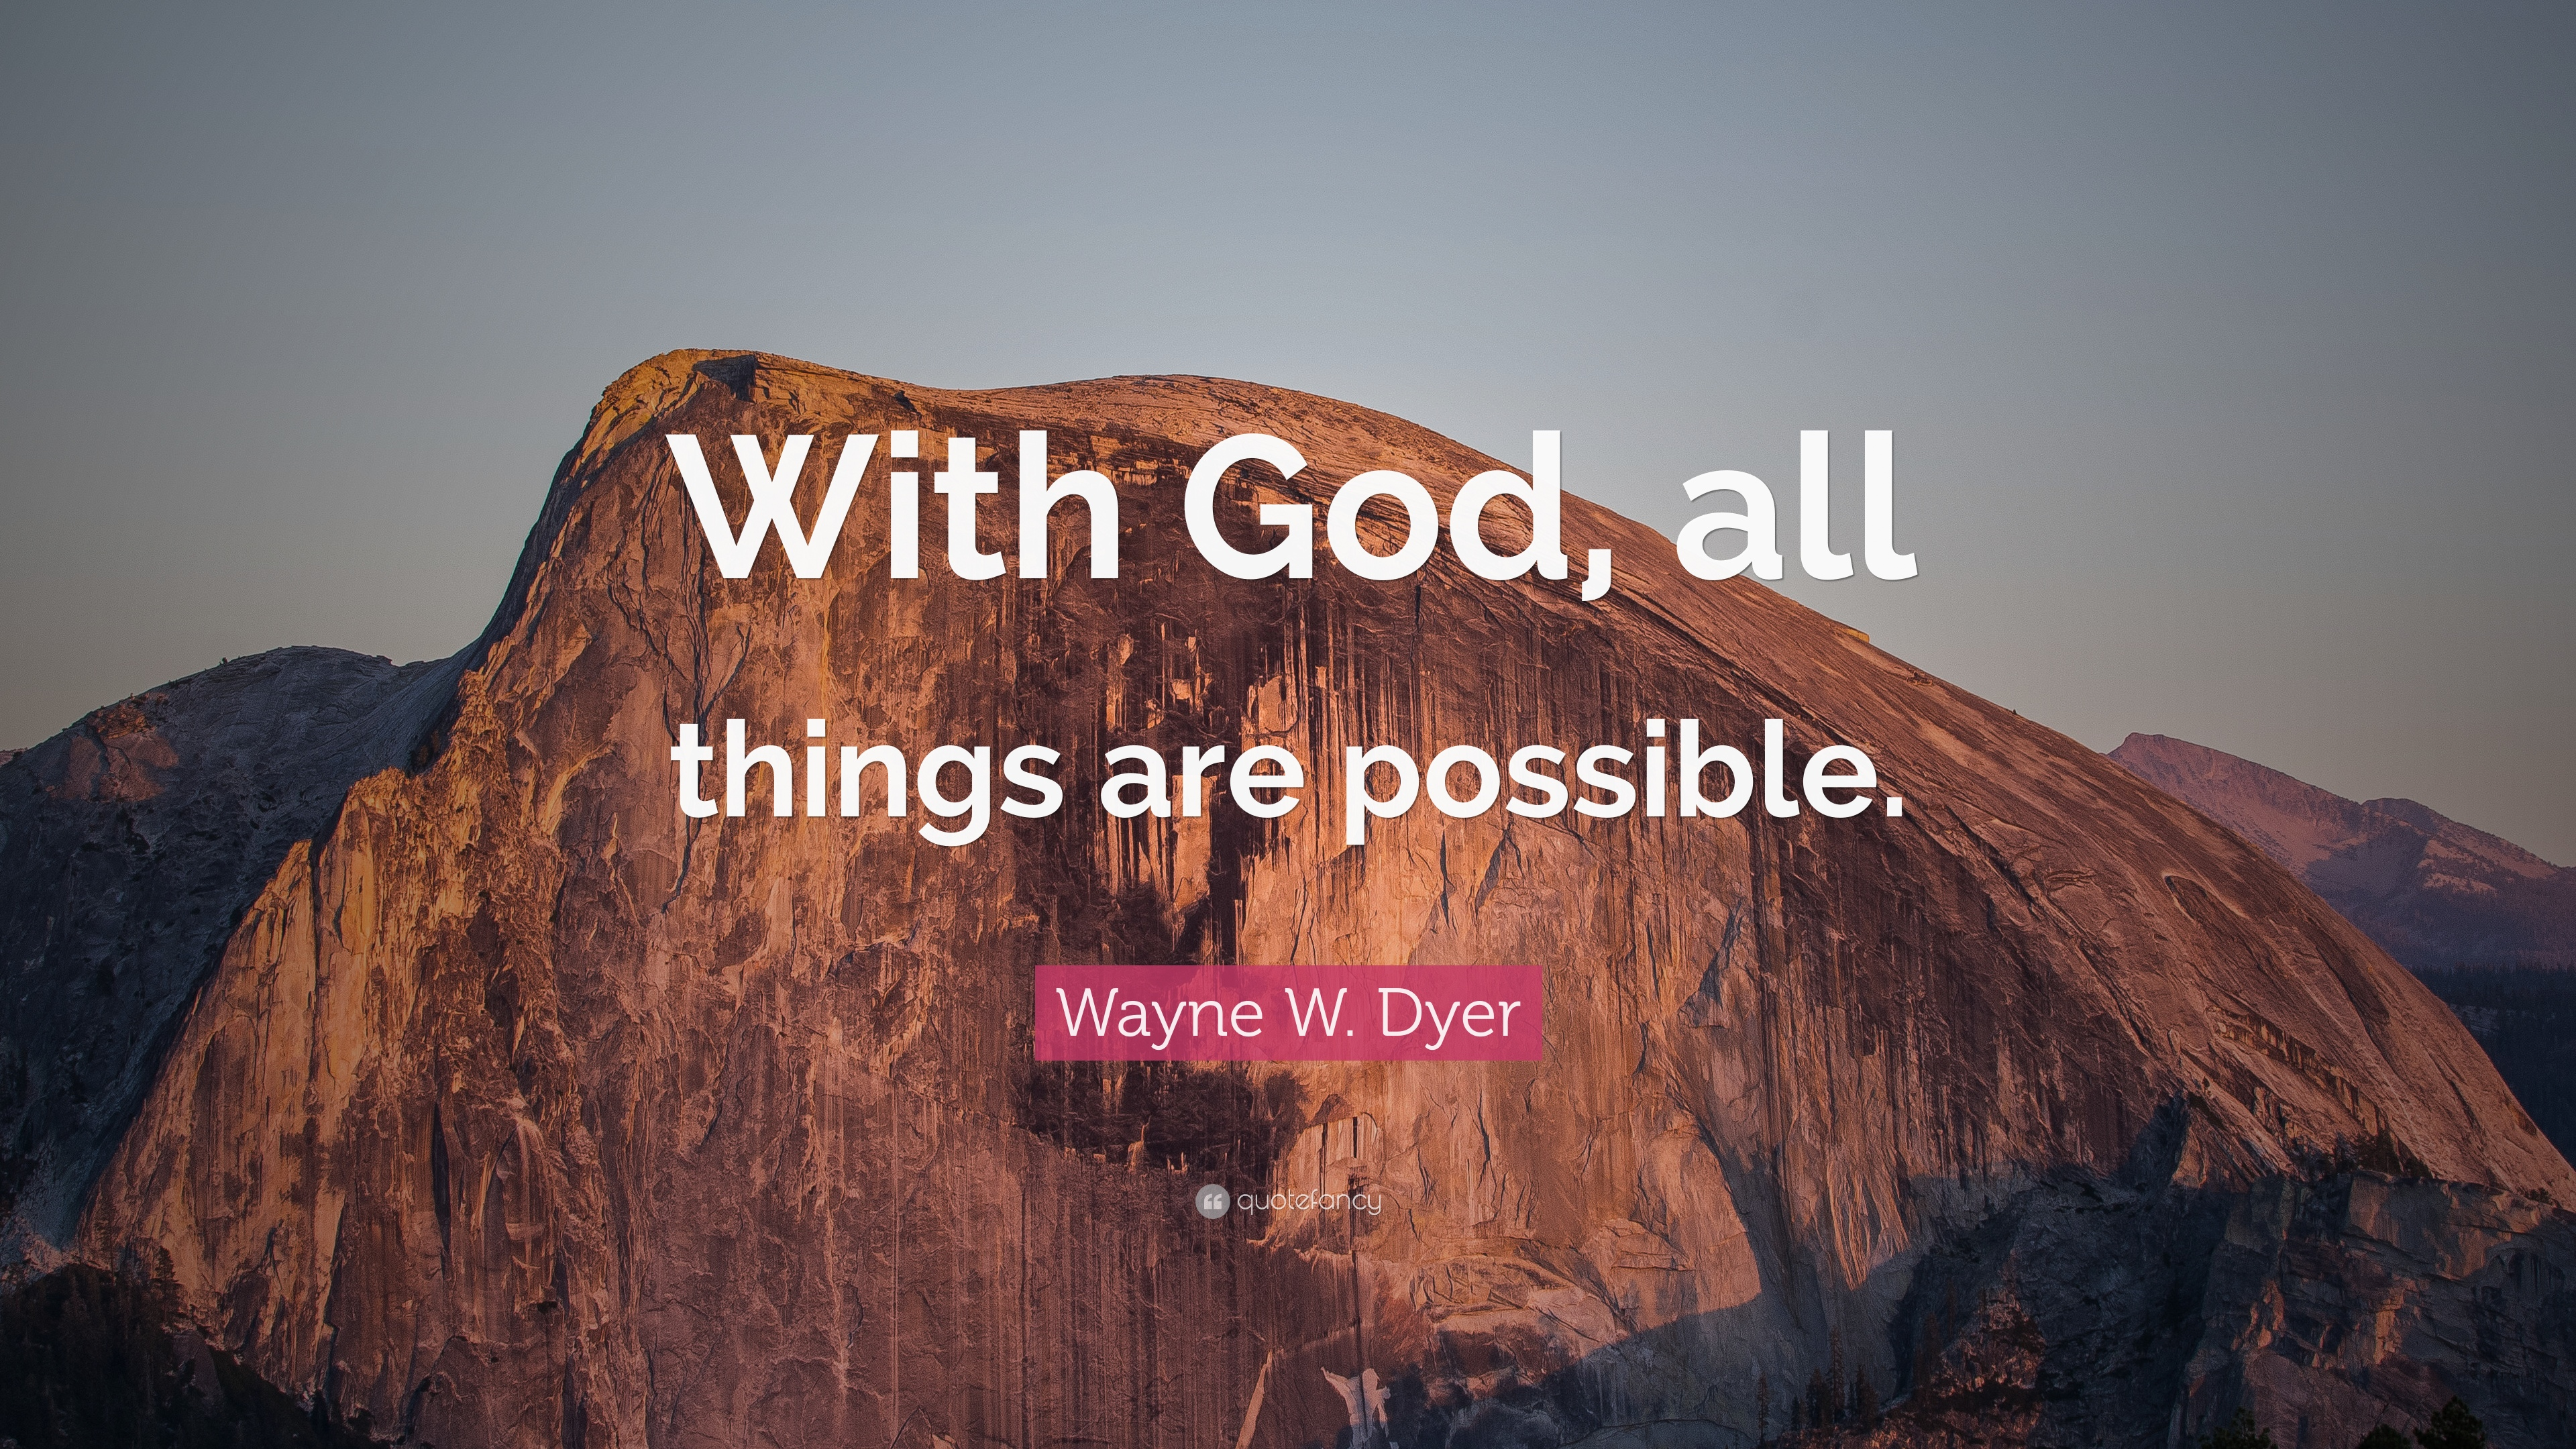 With God All Things Are Possible Wallpaper | www.galleryhip.com - The ...